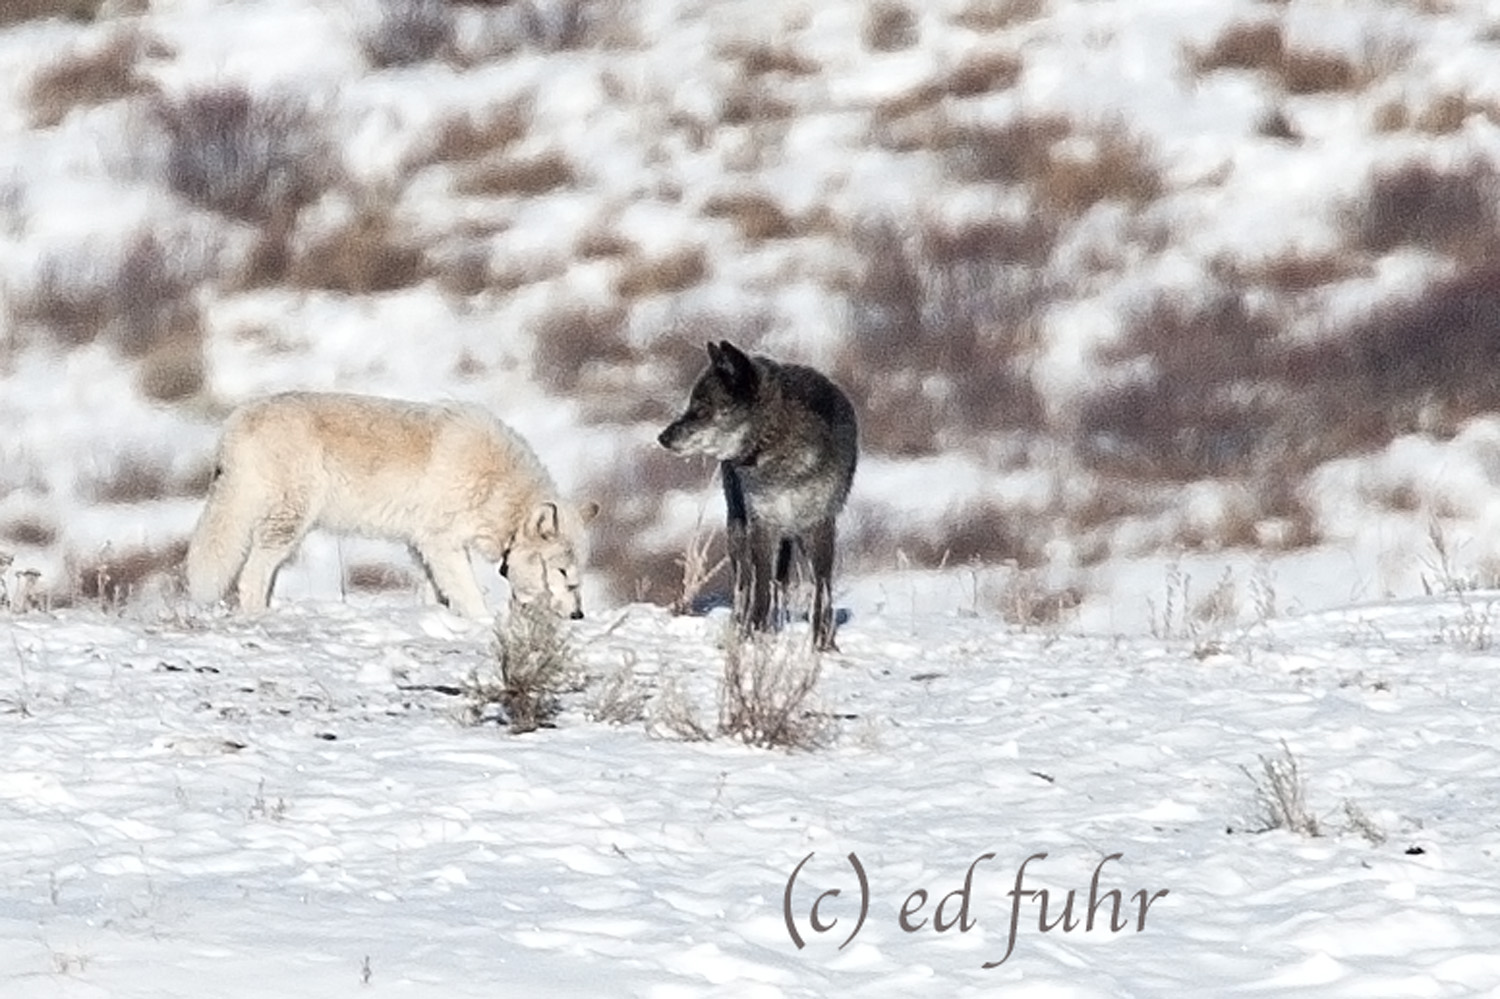 wolf, winter, snow, grand teton national park, photograph, image, wildlife, 2011, Tetons, Grand Teton, photo